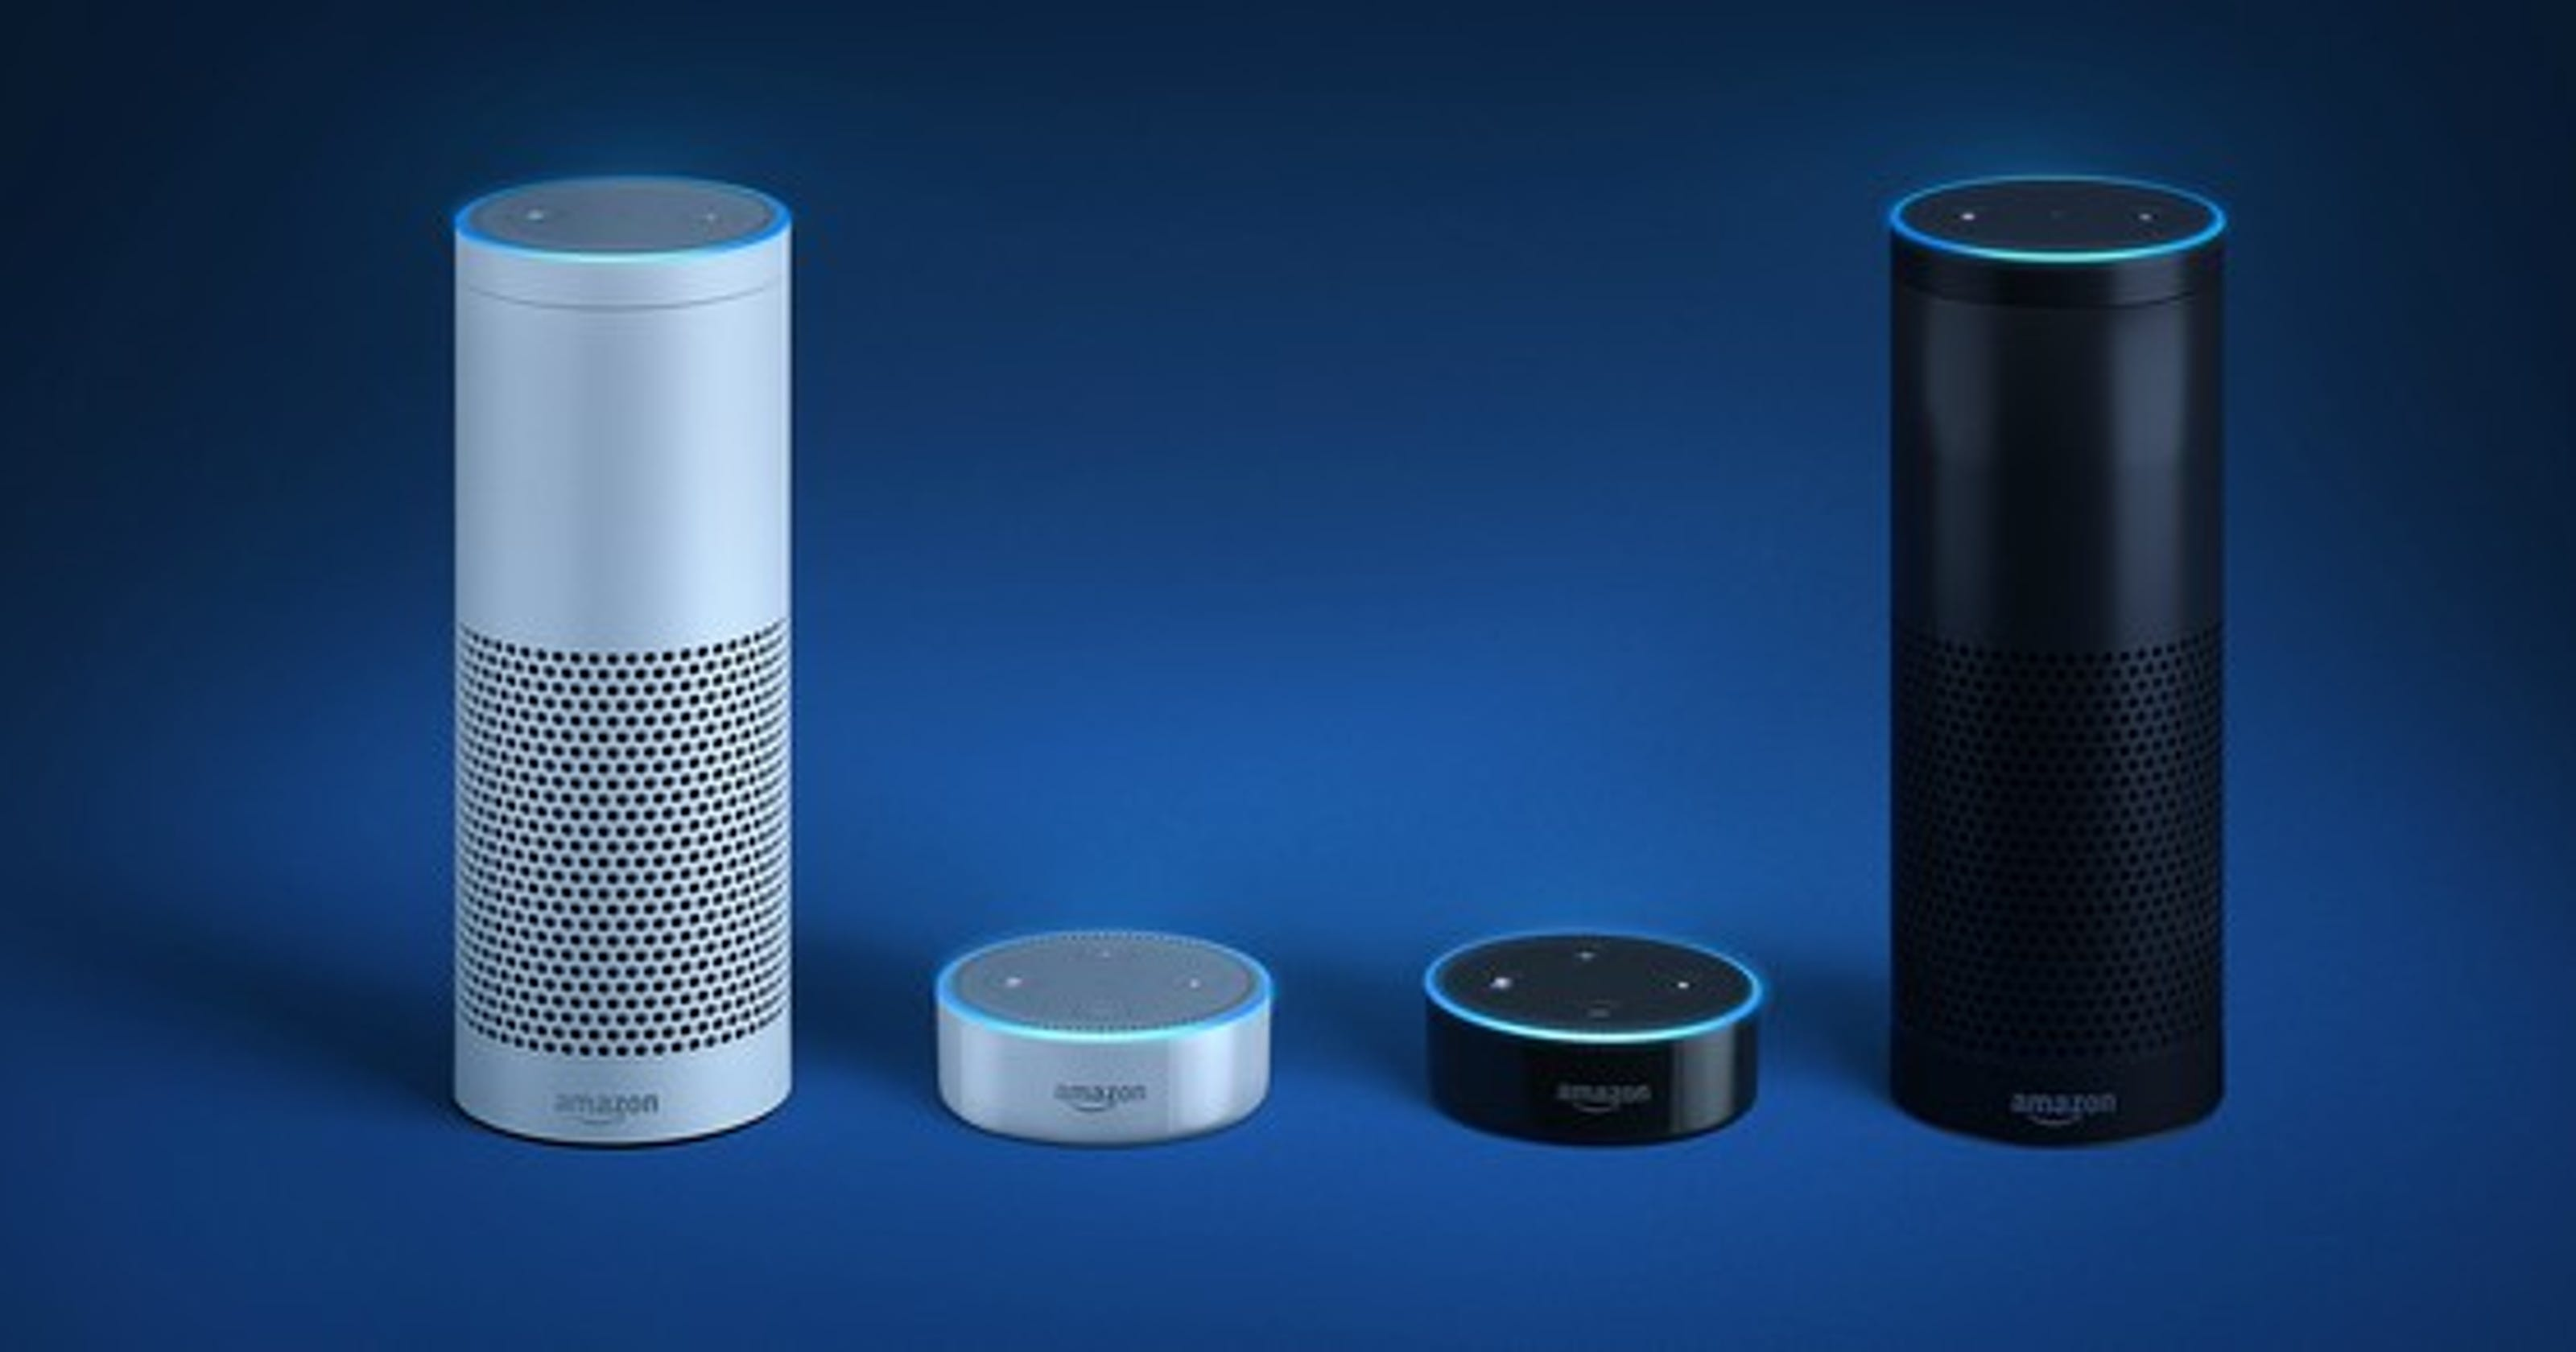 Smart Speakers From Amazon Google And Sonos How To Pick The Best One Structured Wiring Homepro S At A Glance